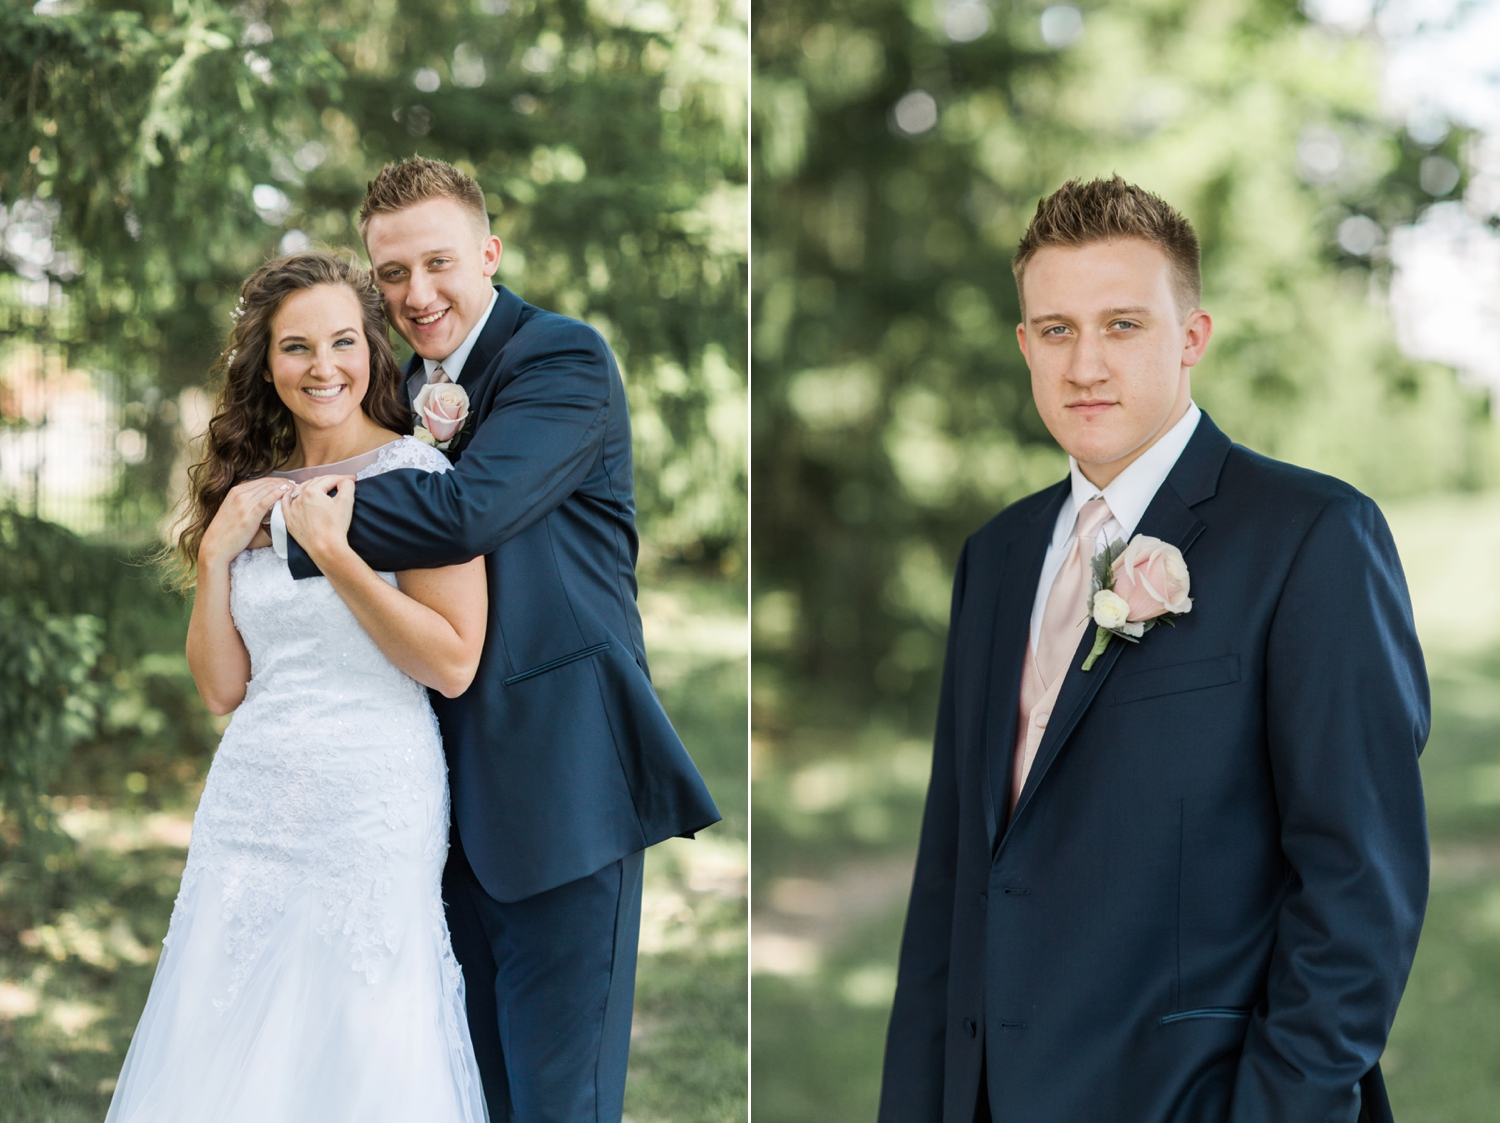 Community_Life_Center_Indianapolis_Indiana_Wedding_Photographer_Chloe_Luka_Photography_6905.jpg